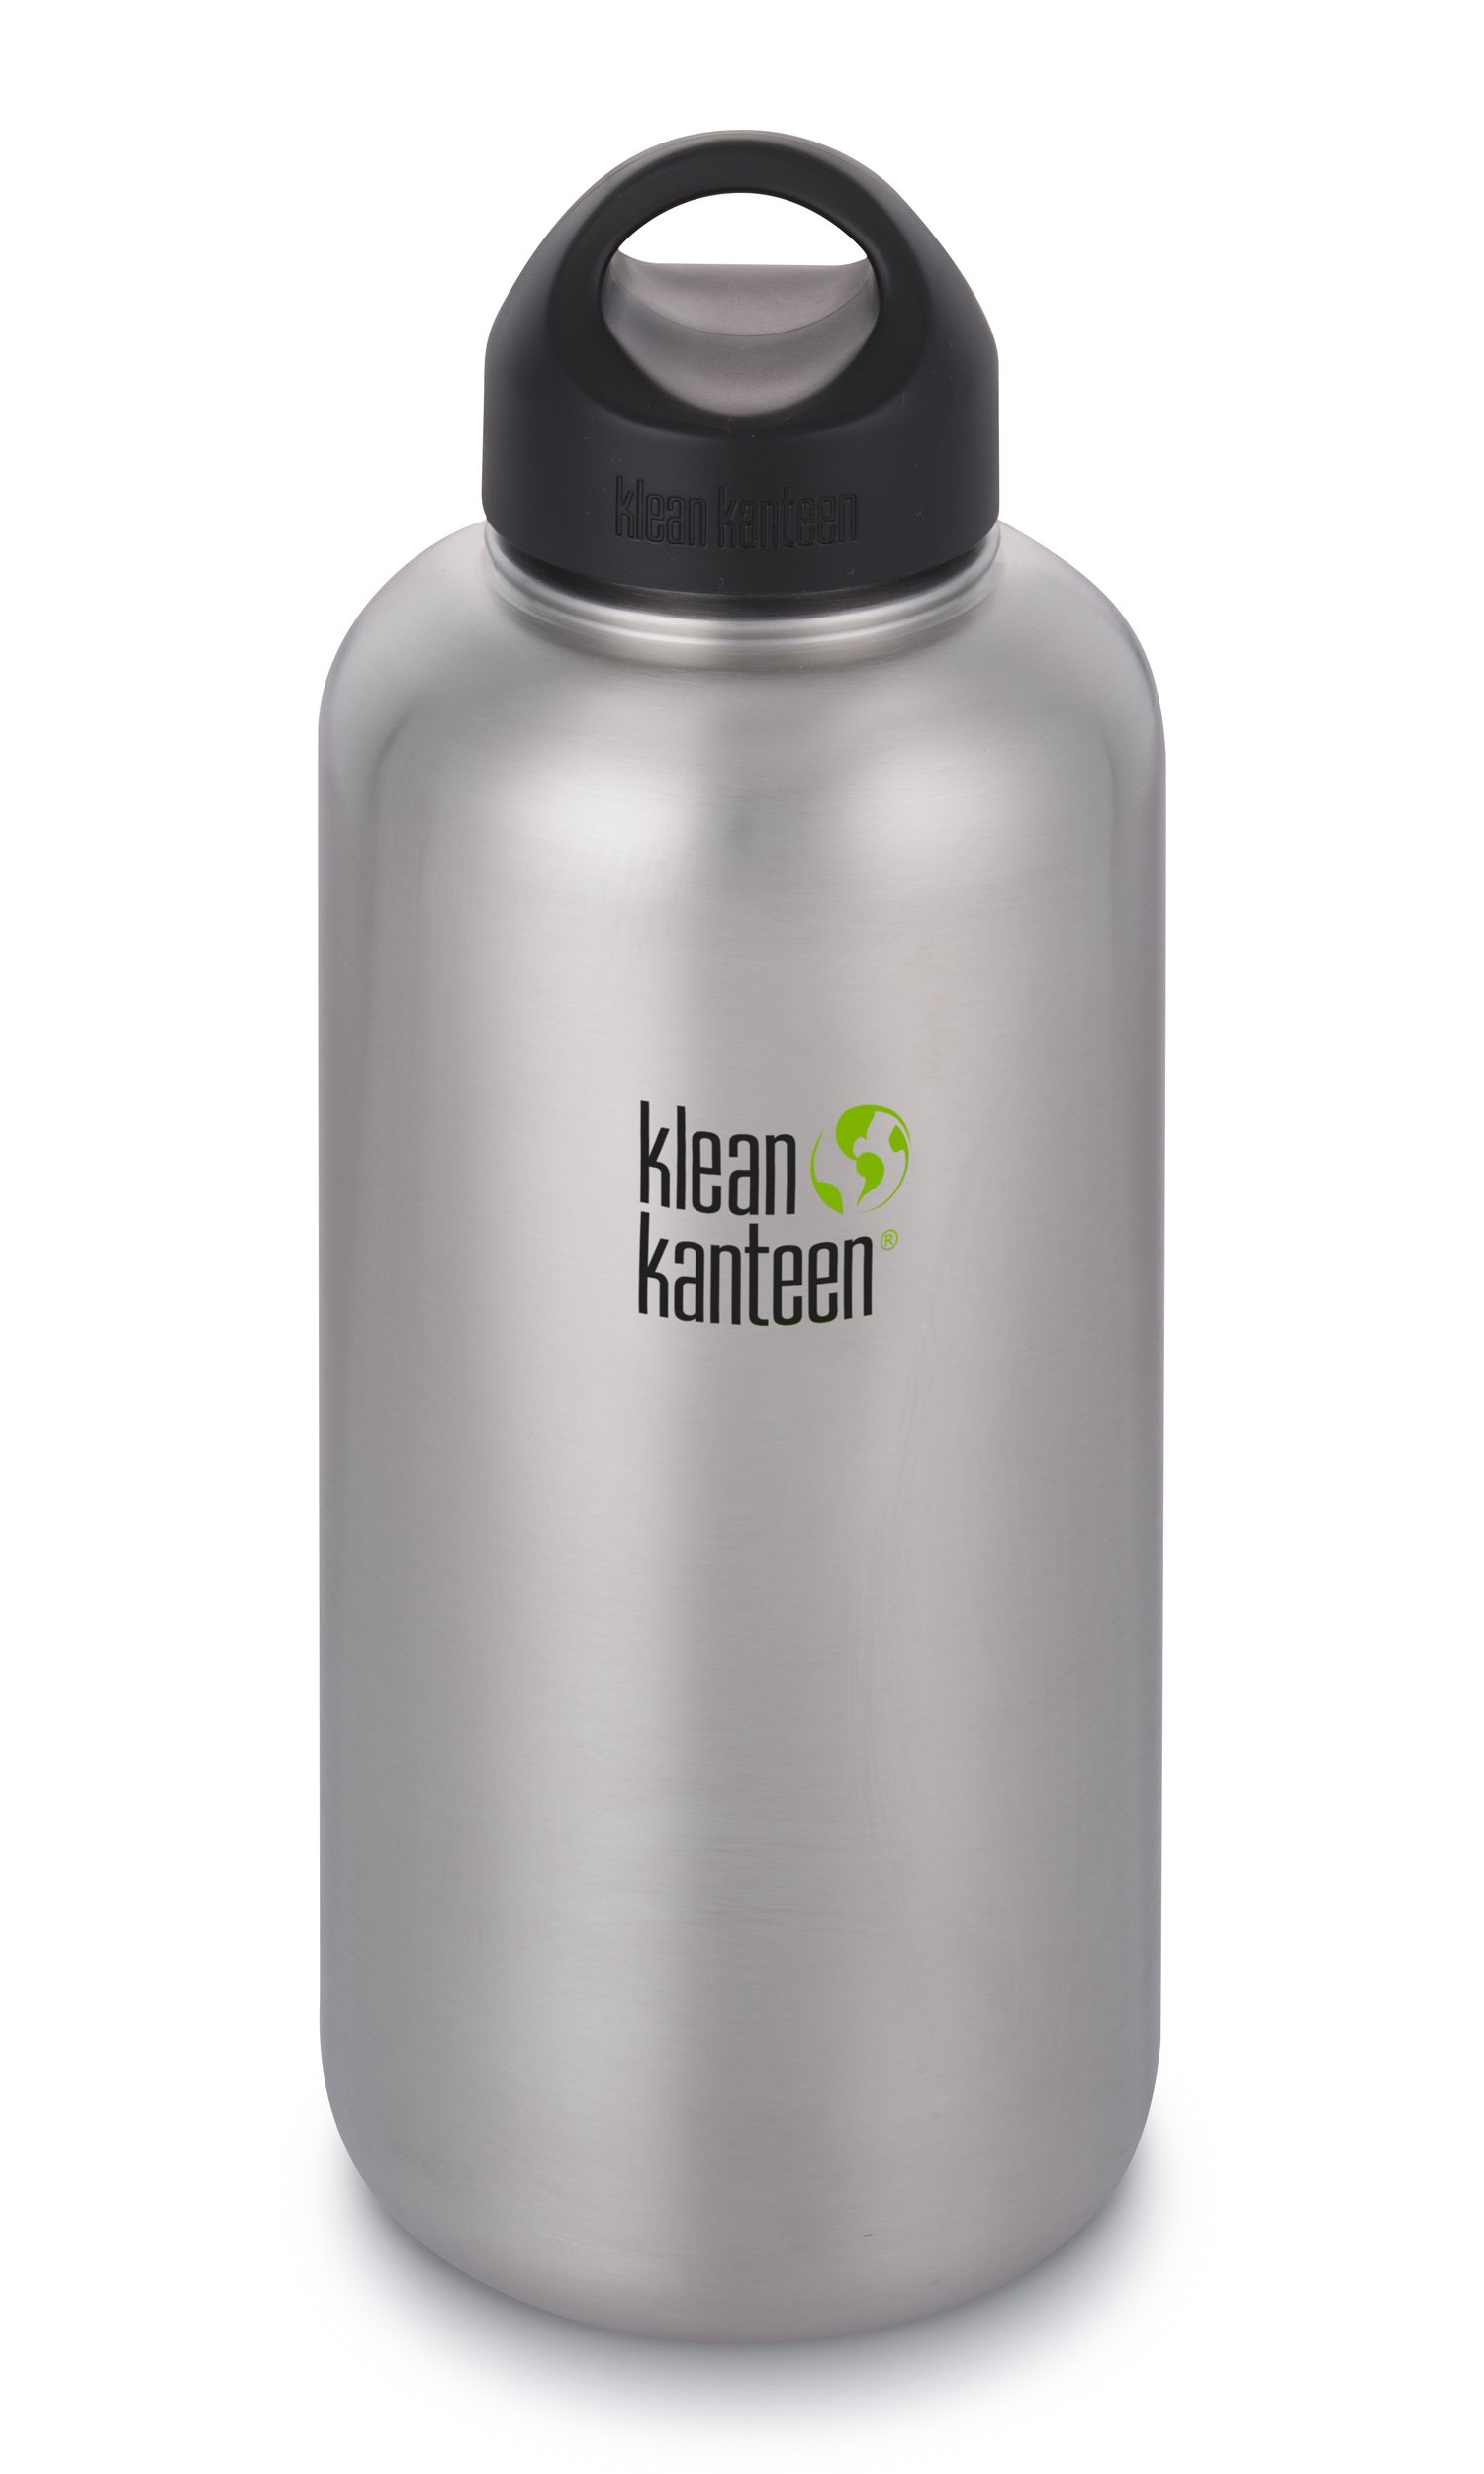 Klean Kanteen 64oz Wide Mouth Stainless Steel Water Bottle Single Wall with Leak Proof Stainless Steel Interior Cap - Brushed Stainless (New 2018)